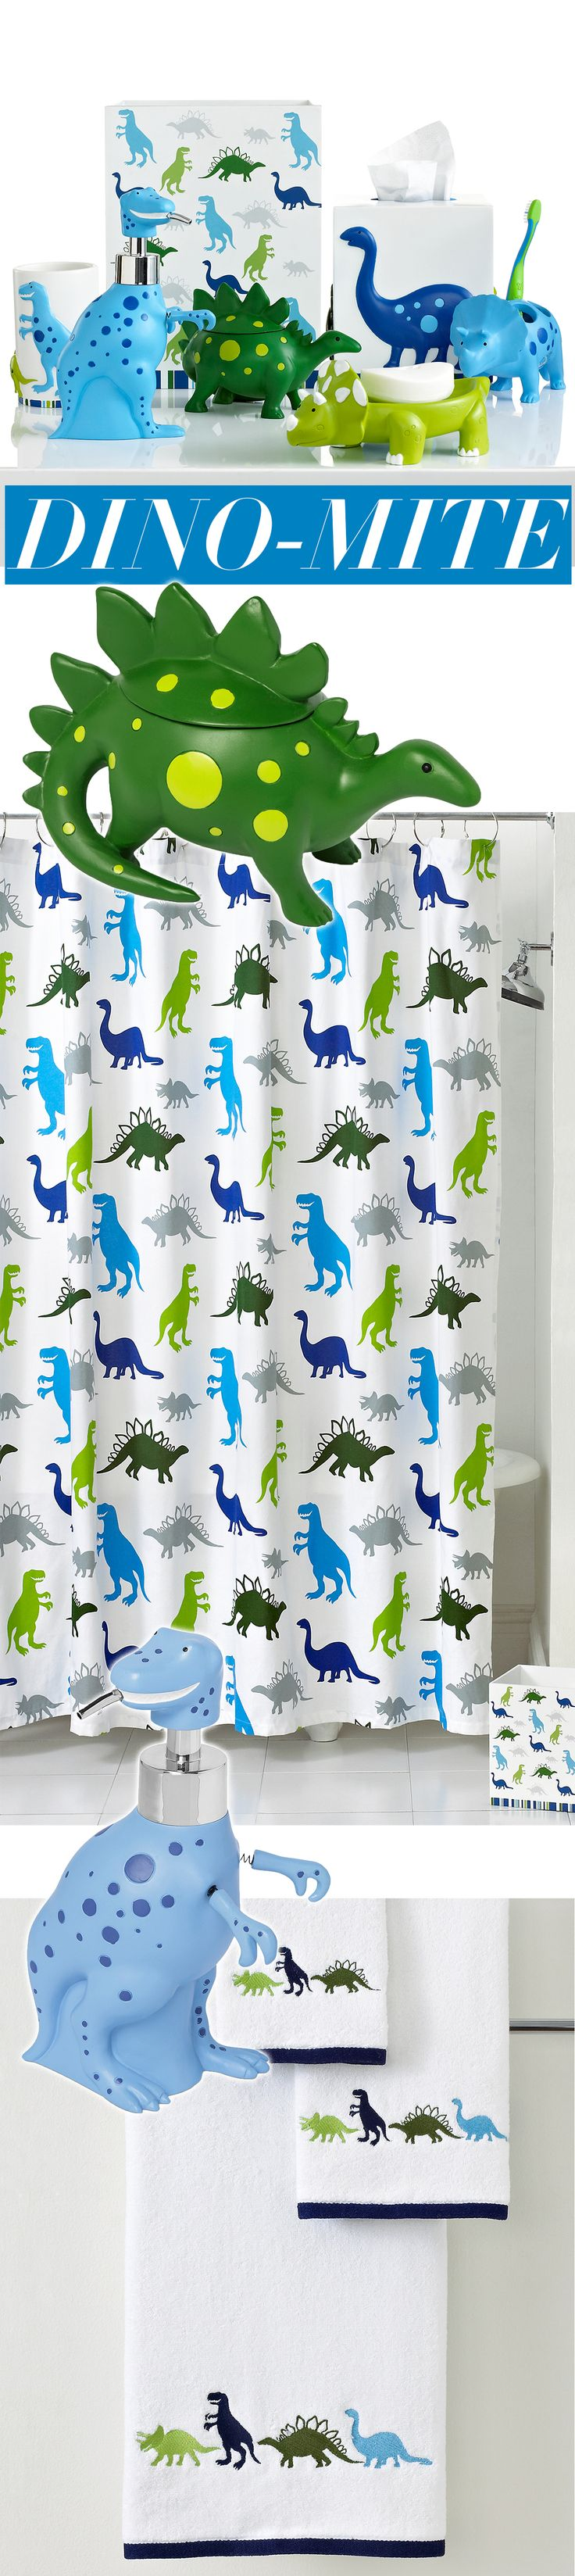 Now that's a dino-mite bathroom!  Embrace your kids' dinosaur obsession with towels, shower curtains and accessory featuring all their favorite dinos.